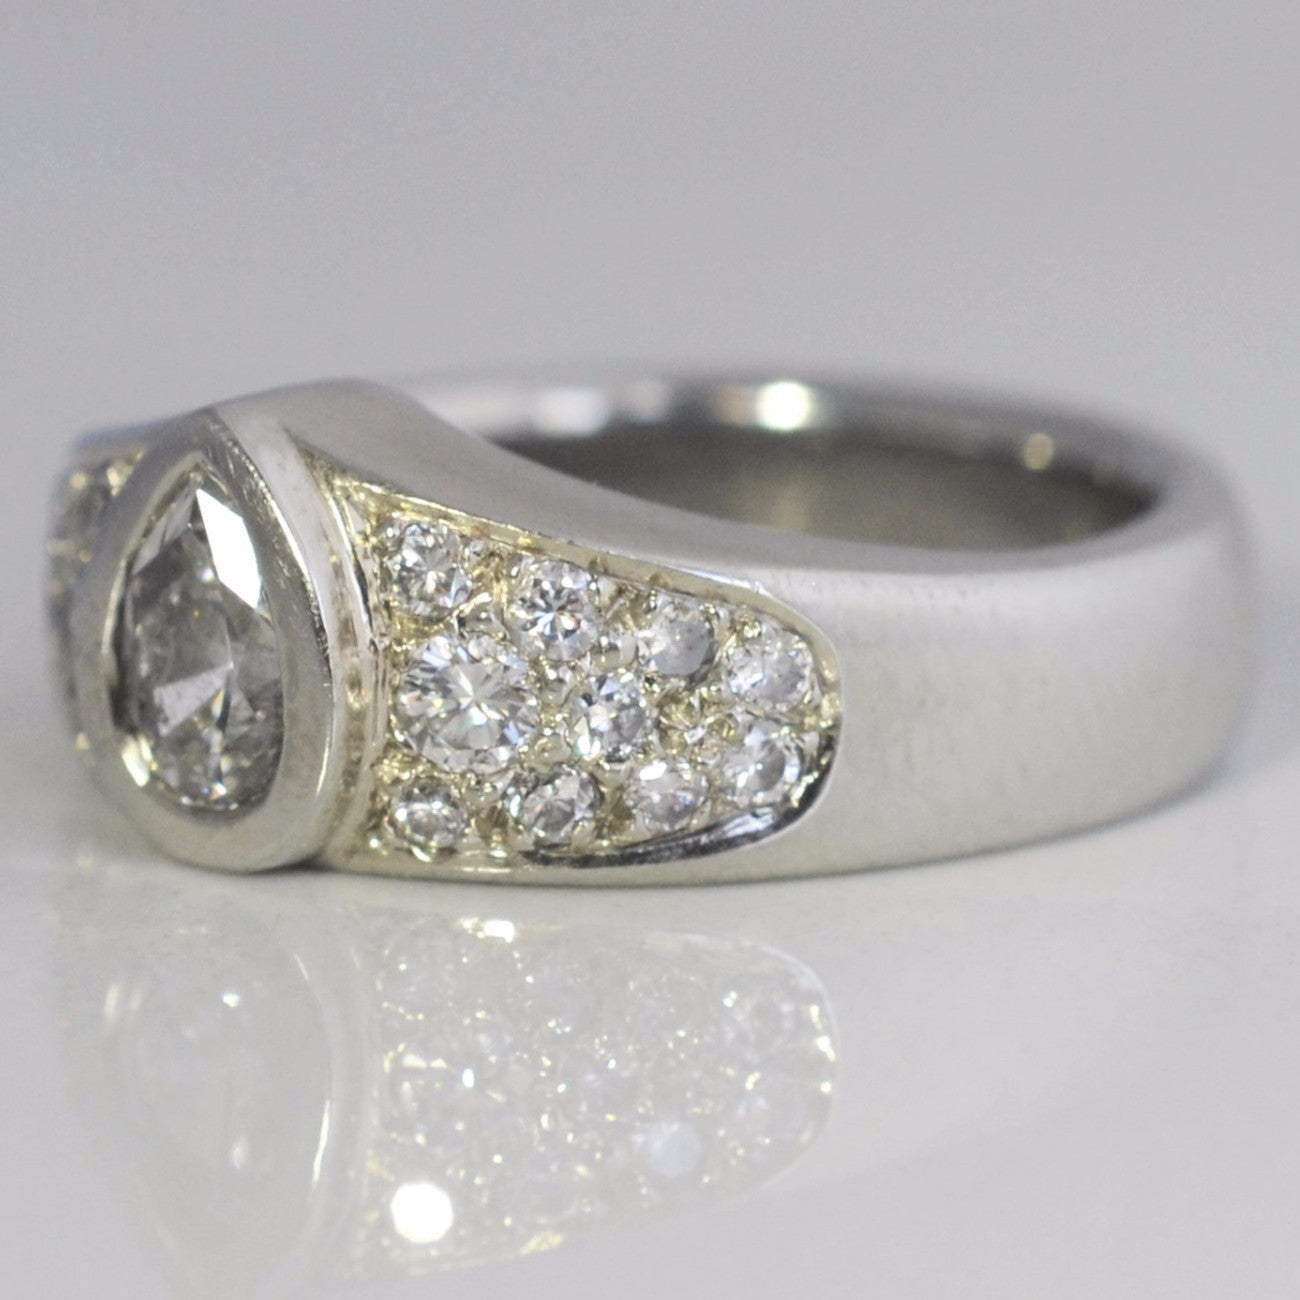 Pave Pear Diamond Engagement Ring | 0.90 ctw, SZ 5.5 |